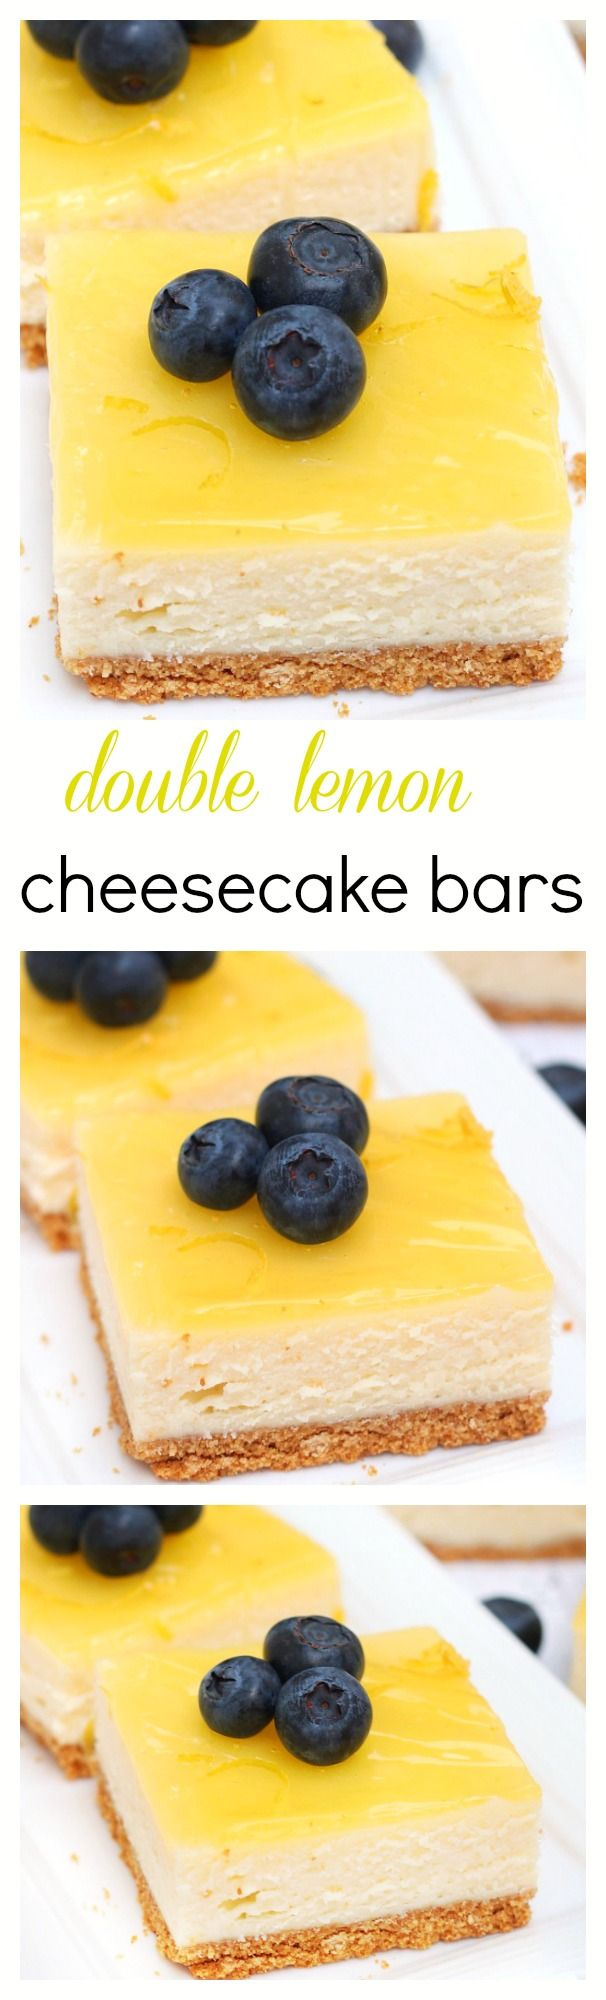 Smooth, creamy and full of citrus flavor, these lemon cheesecake bars are topped with a thin layer of lemon glaze and prepared on a simple graham cracker crust